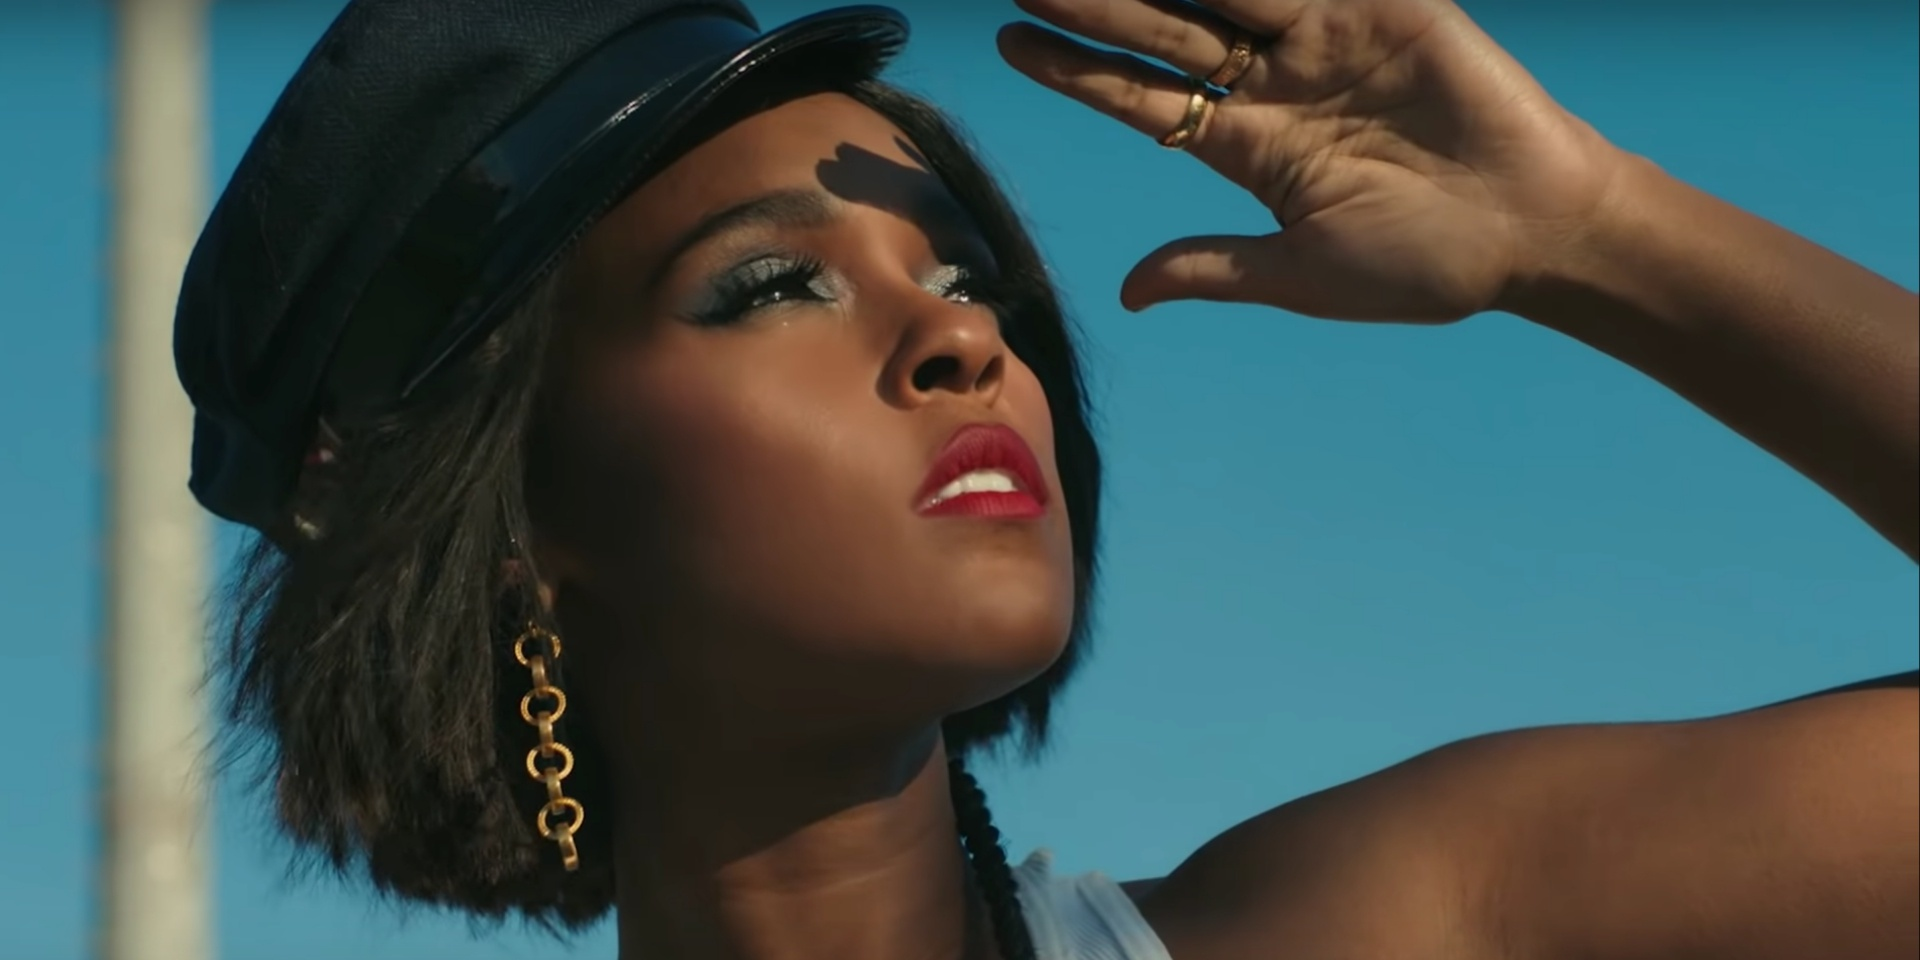 """Janelle Monáe escapes from the oppressor with Zoë Kravitz in music video for """"Screwed"""" – watch"""